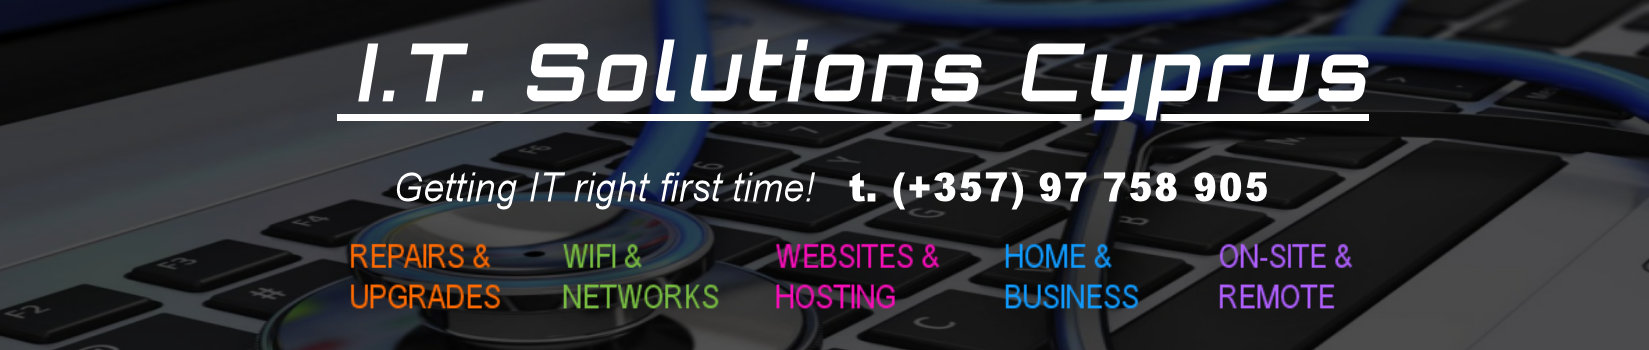 IT Solutions Cyprus